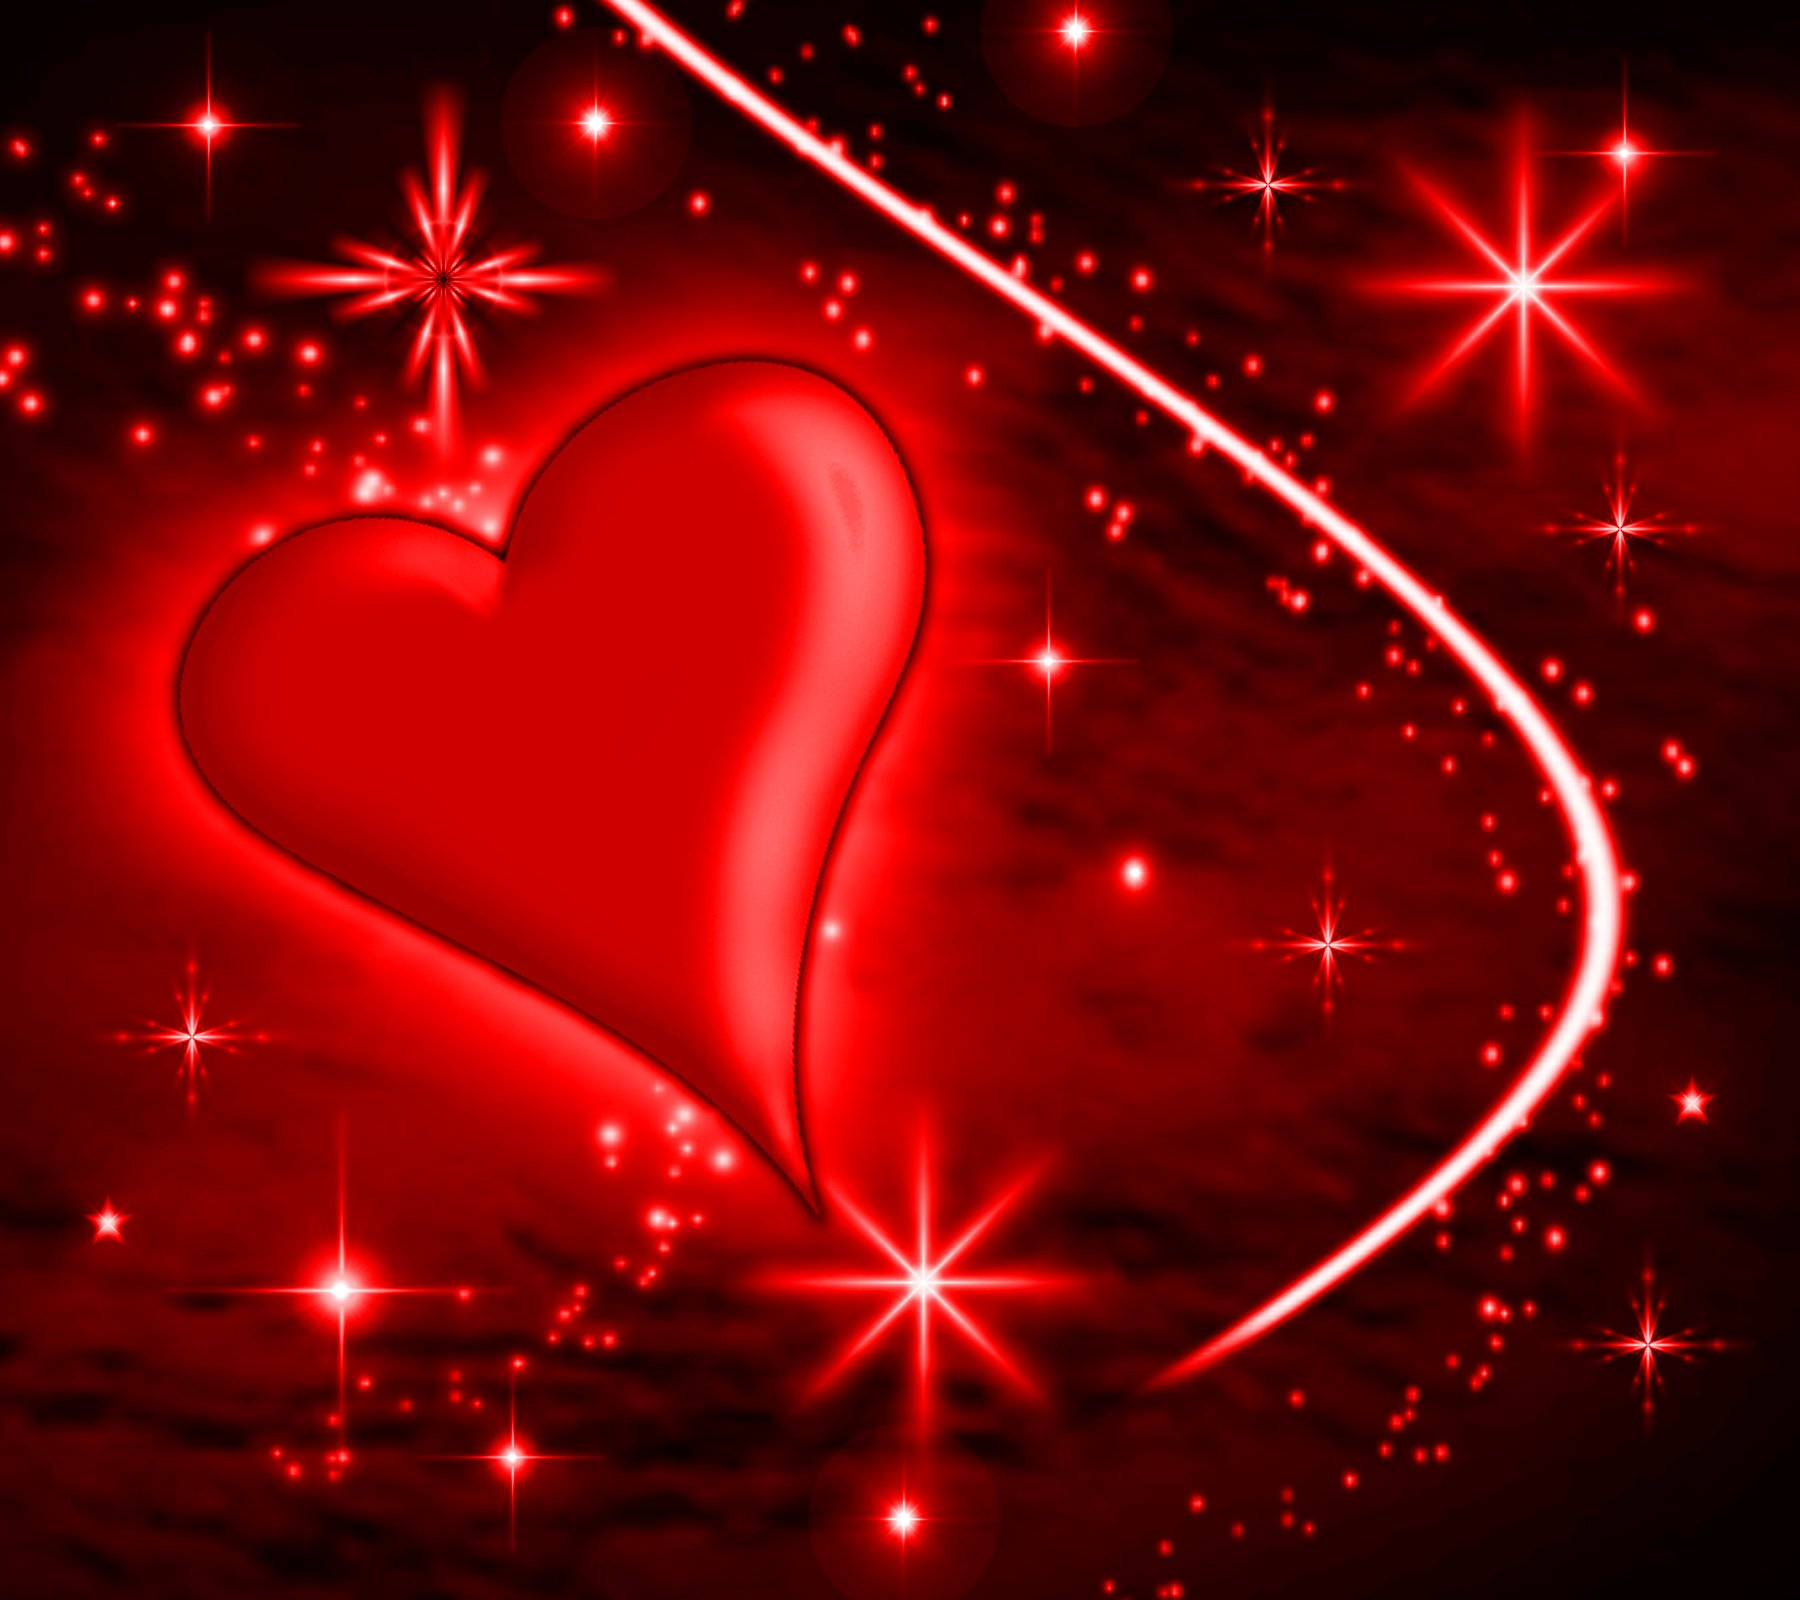 Red Heart With Plasma Stars Background 1800x1600